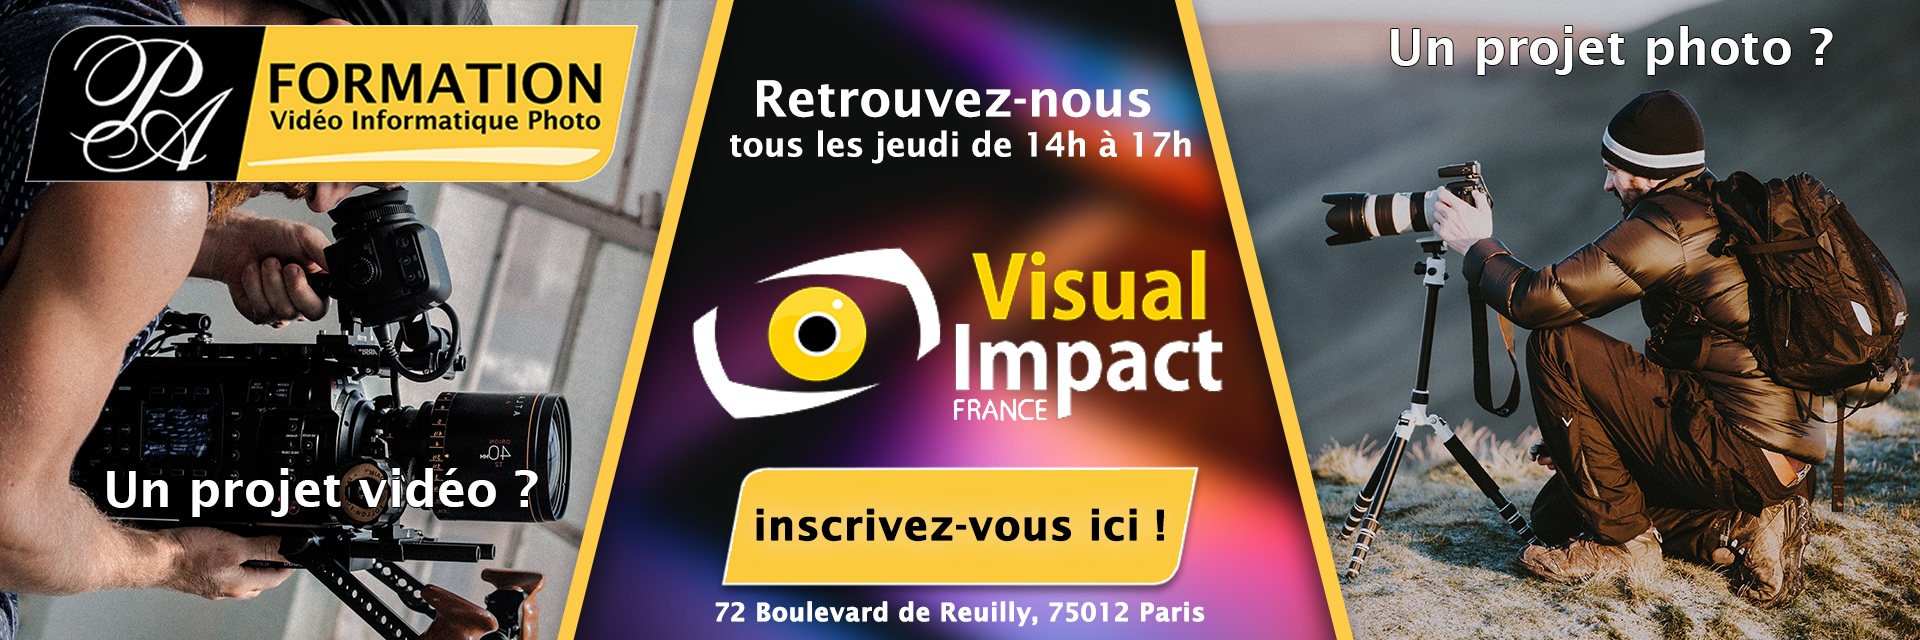 Visualimpact-PA FORMATION